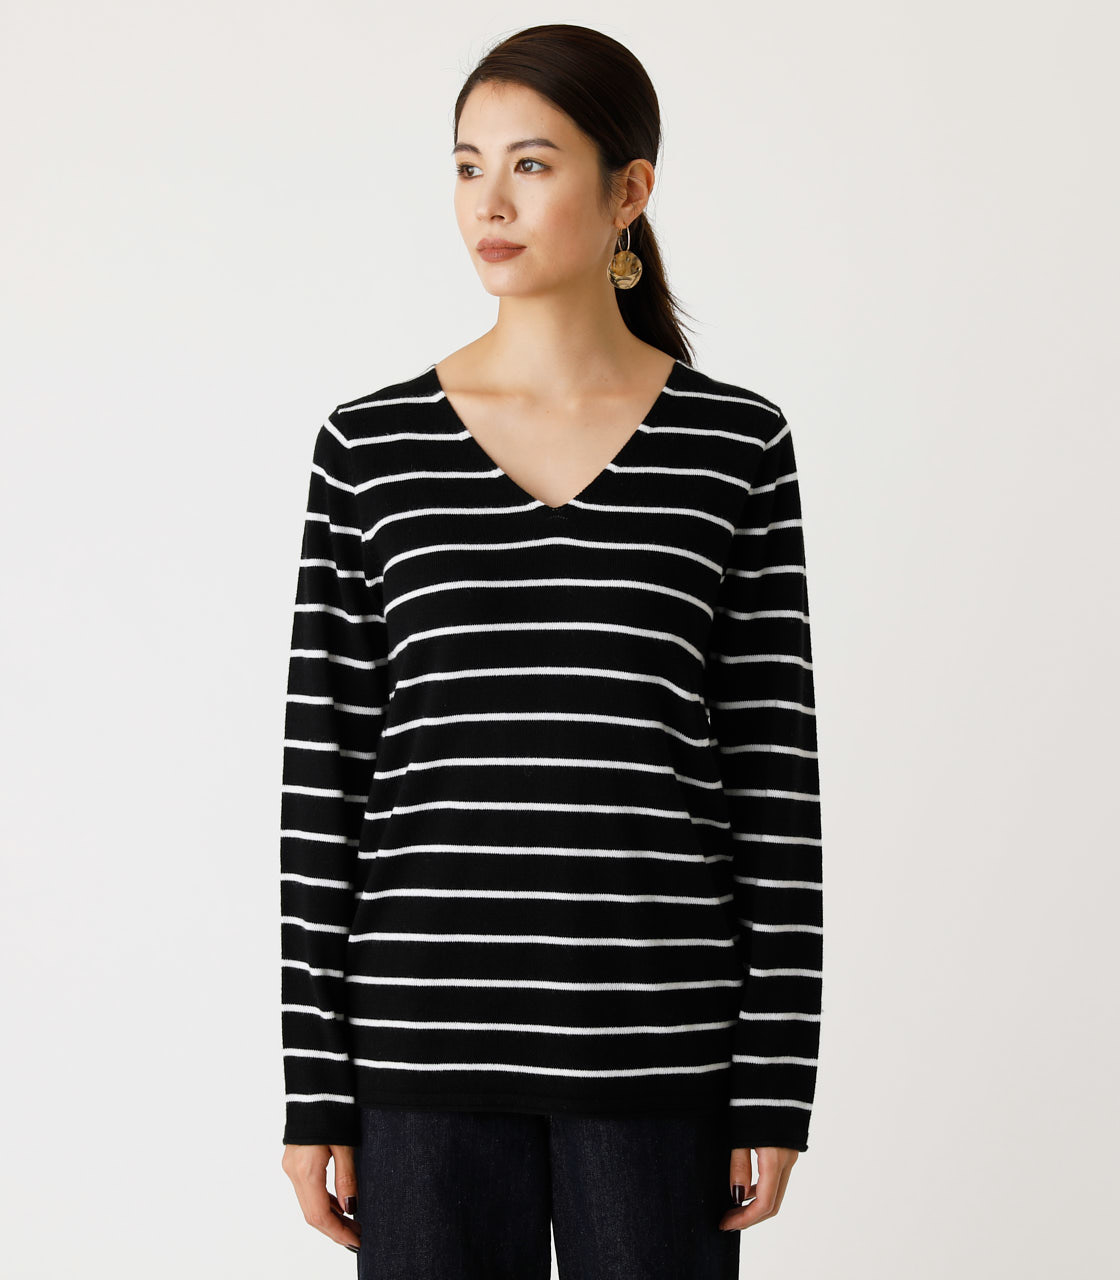 NUDIE V/N KNIT TOPS Ⅱ/ヌーディーVネックニットトップスⅡ 詳細画像 柄BLK 4